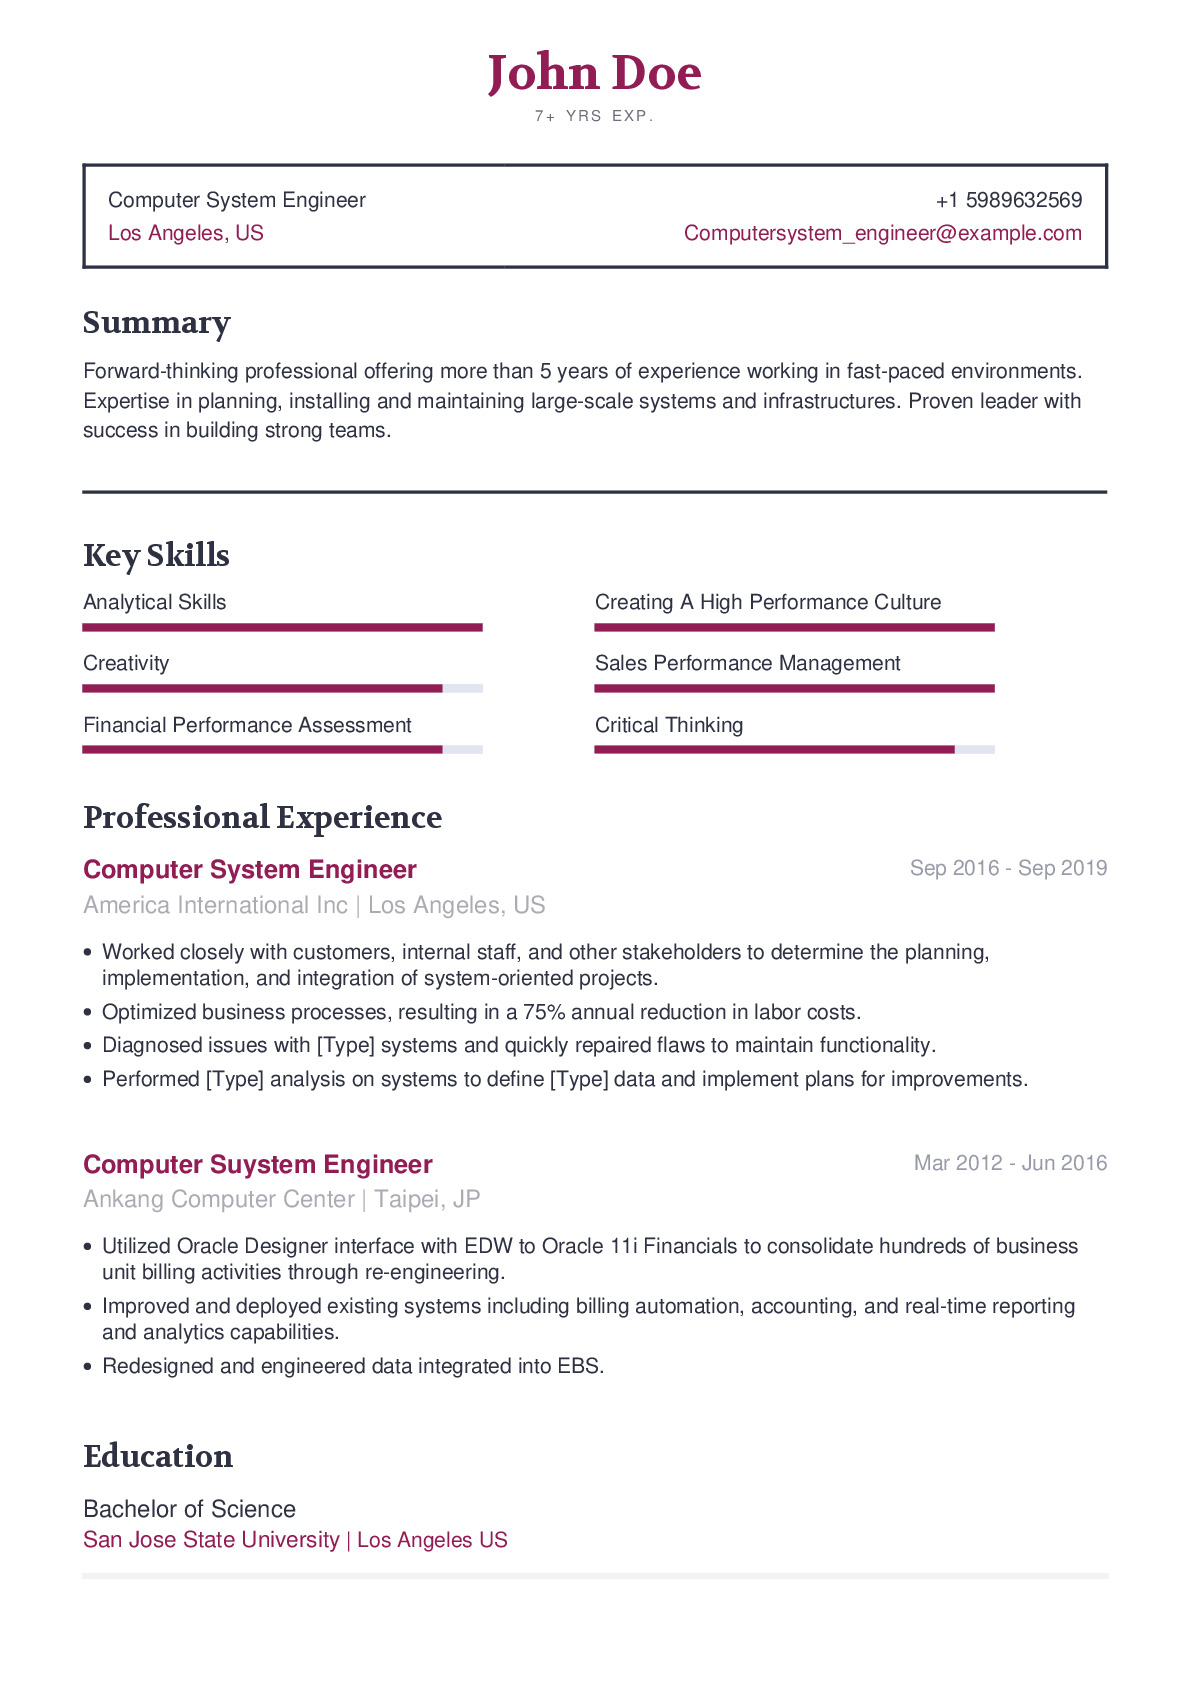 Computer System Engineer Resume Example